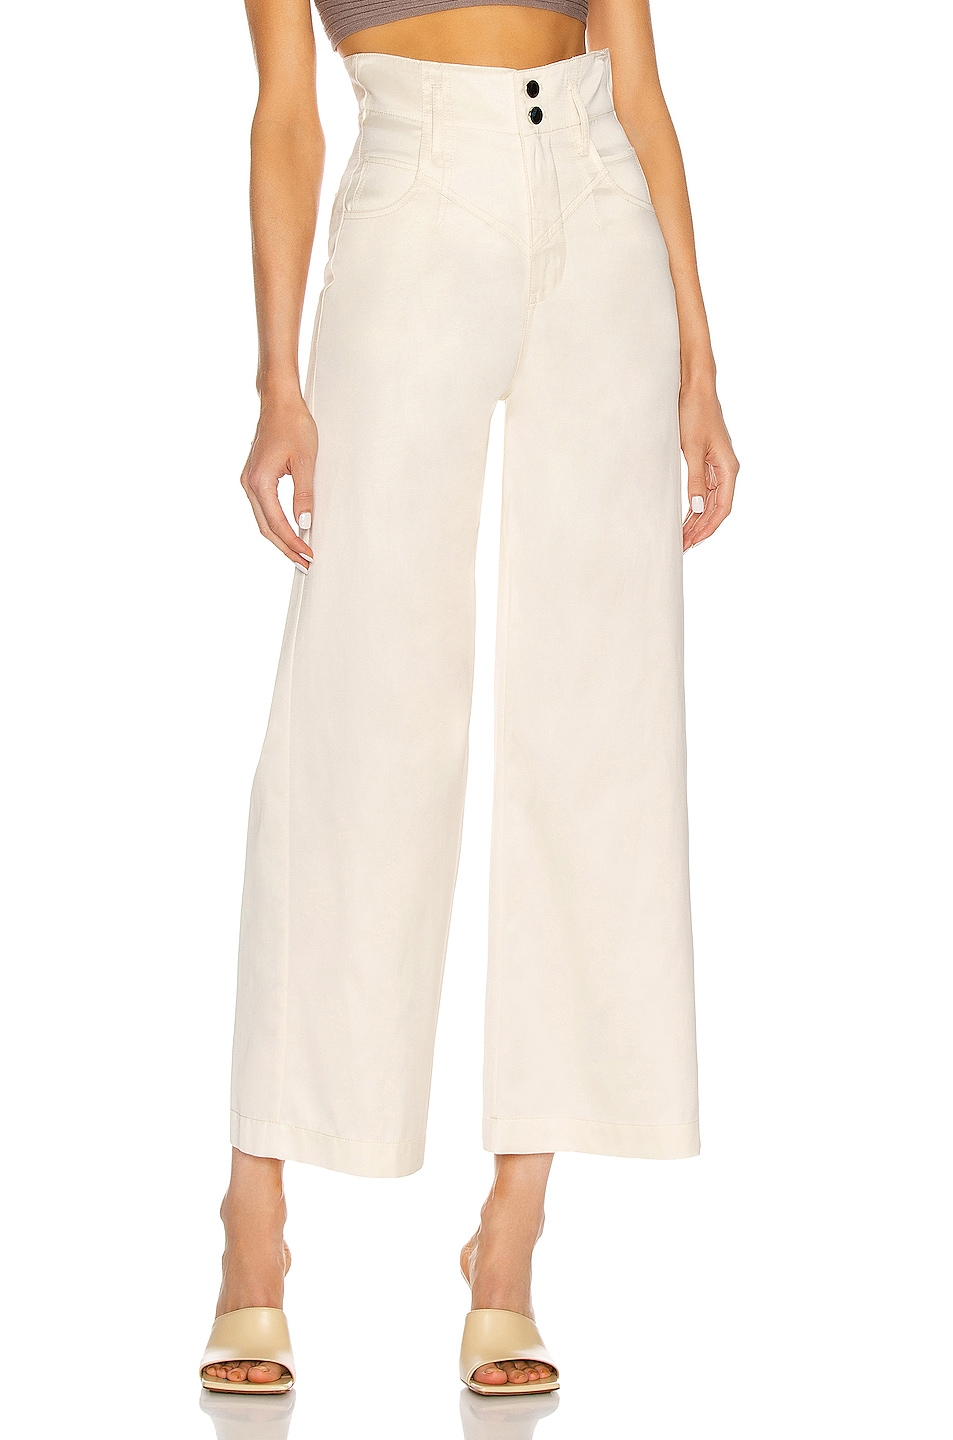 Image 1 of fleur du mal Twill High Waist Pant in Ivory